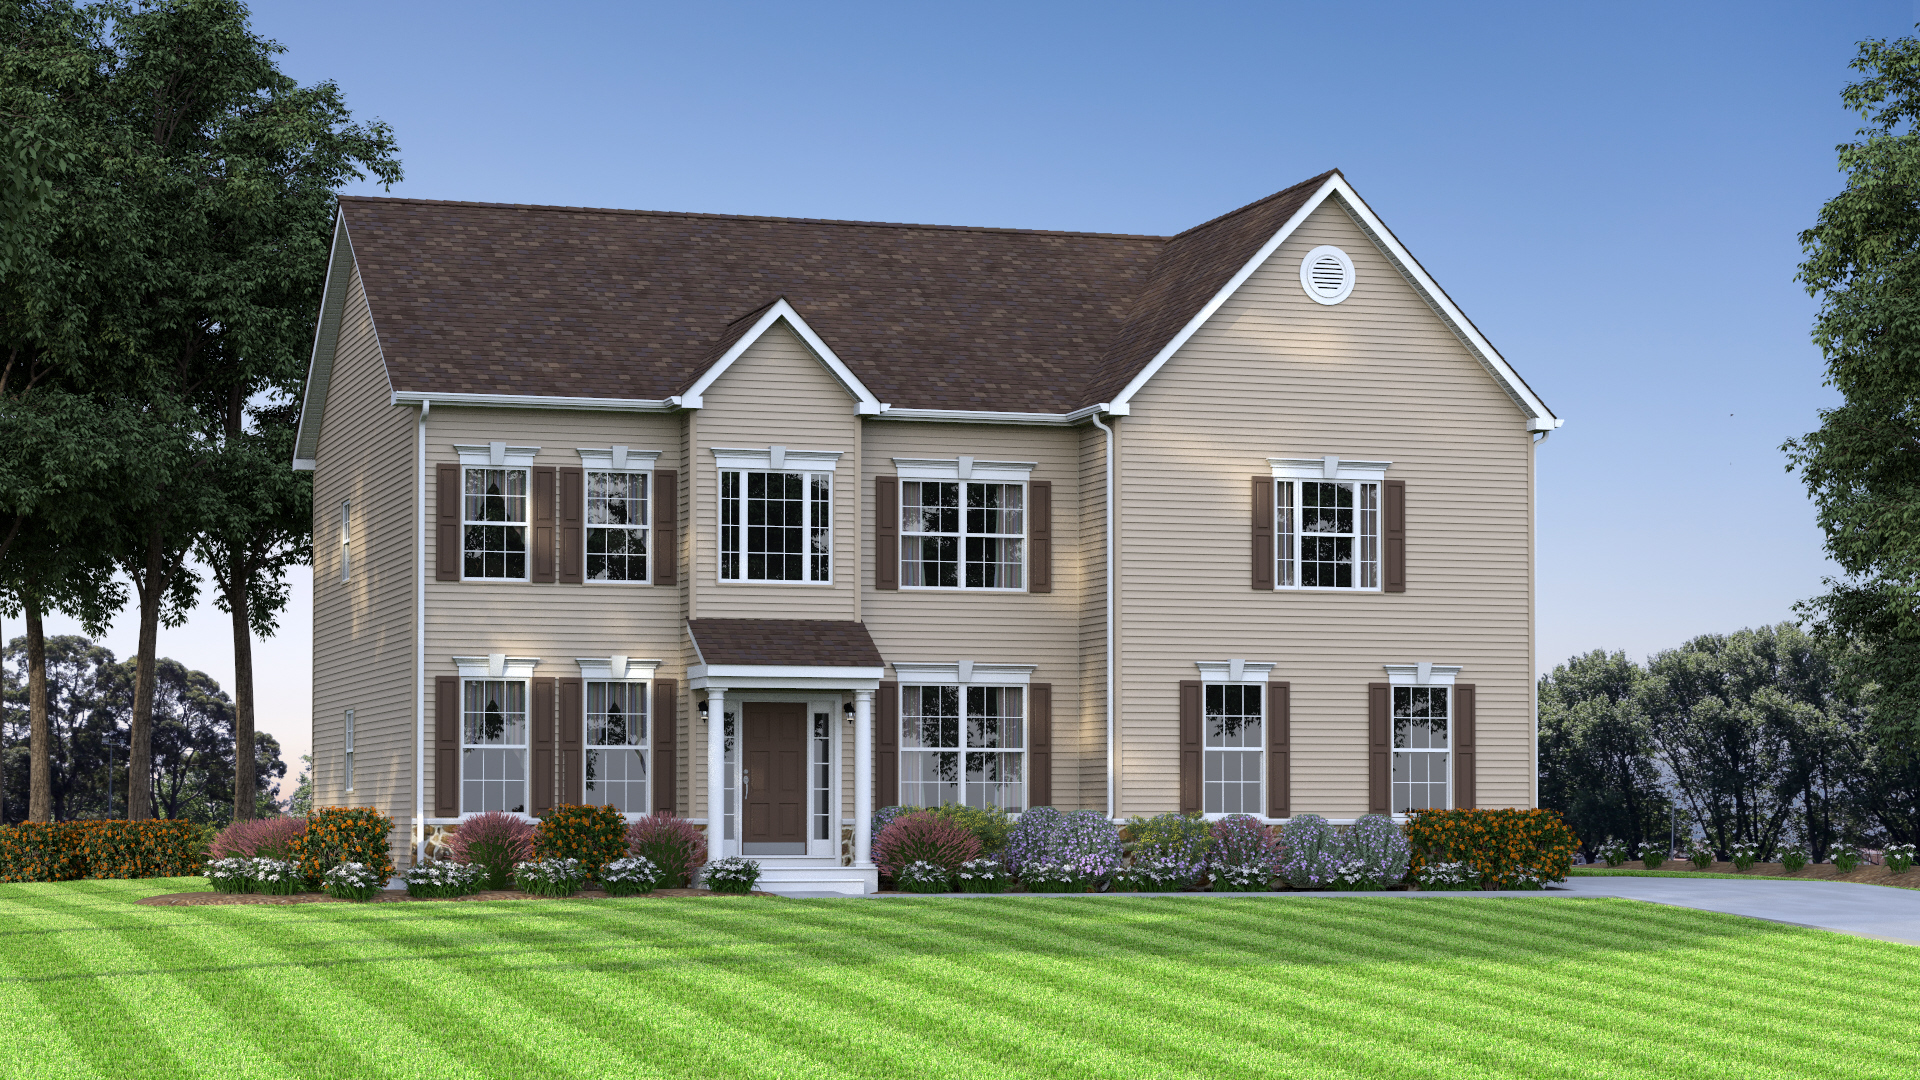 The Charleston  2,700 sf / 4 br / 2.5 ba / 2 car garage Starting at $319,990